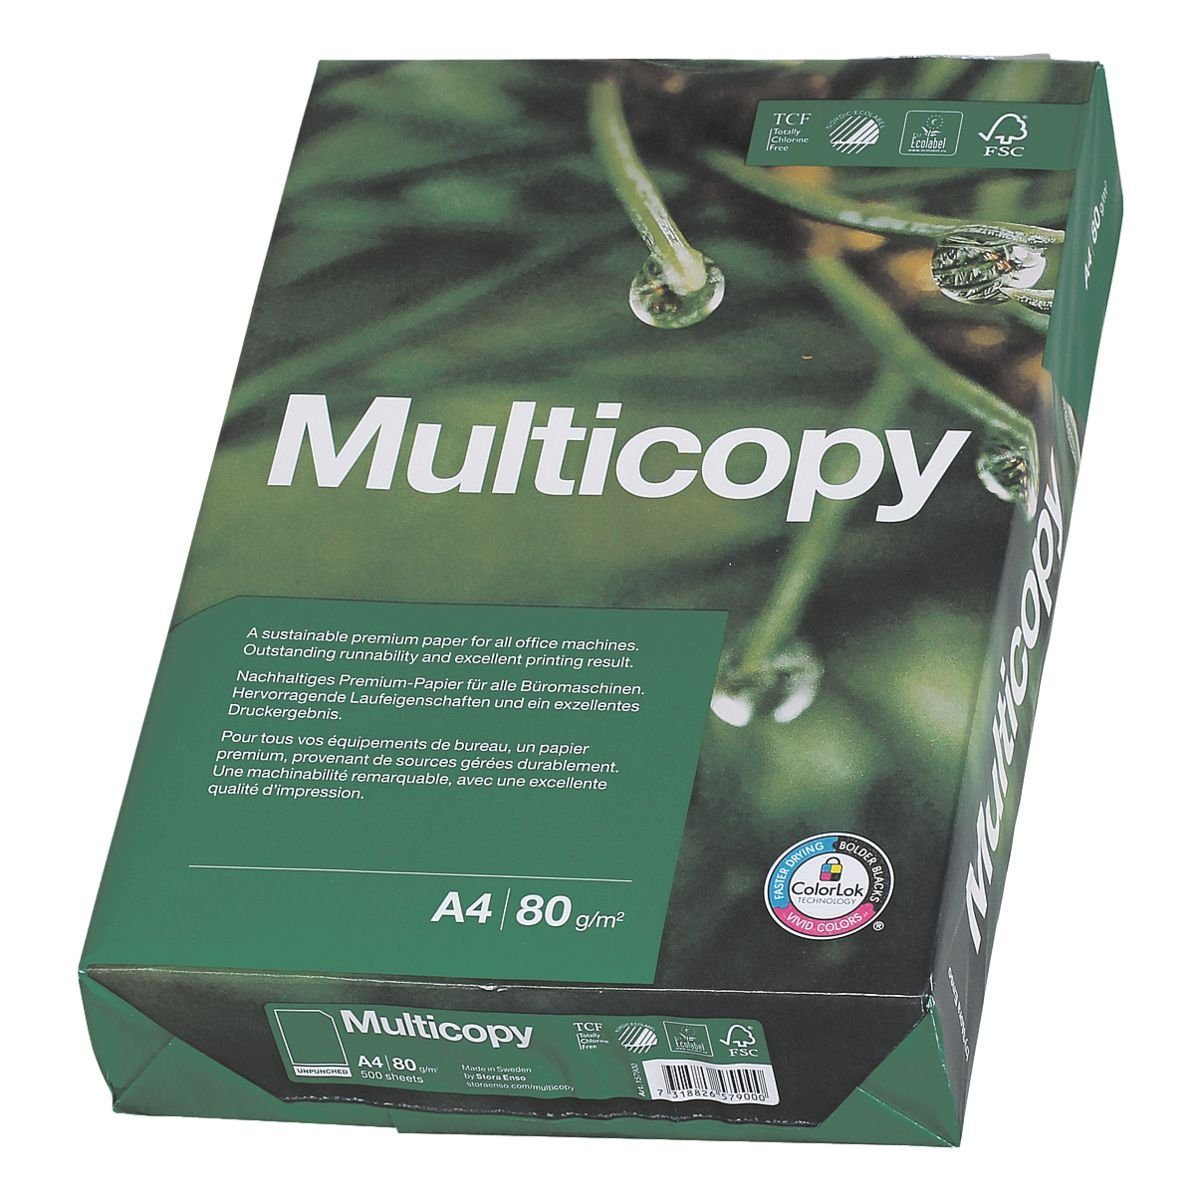 MULTICOPY Multifunktionspapier »MultiCopy«